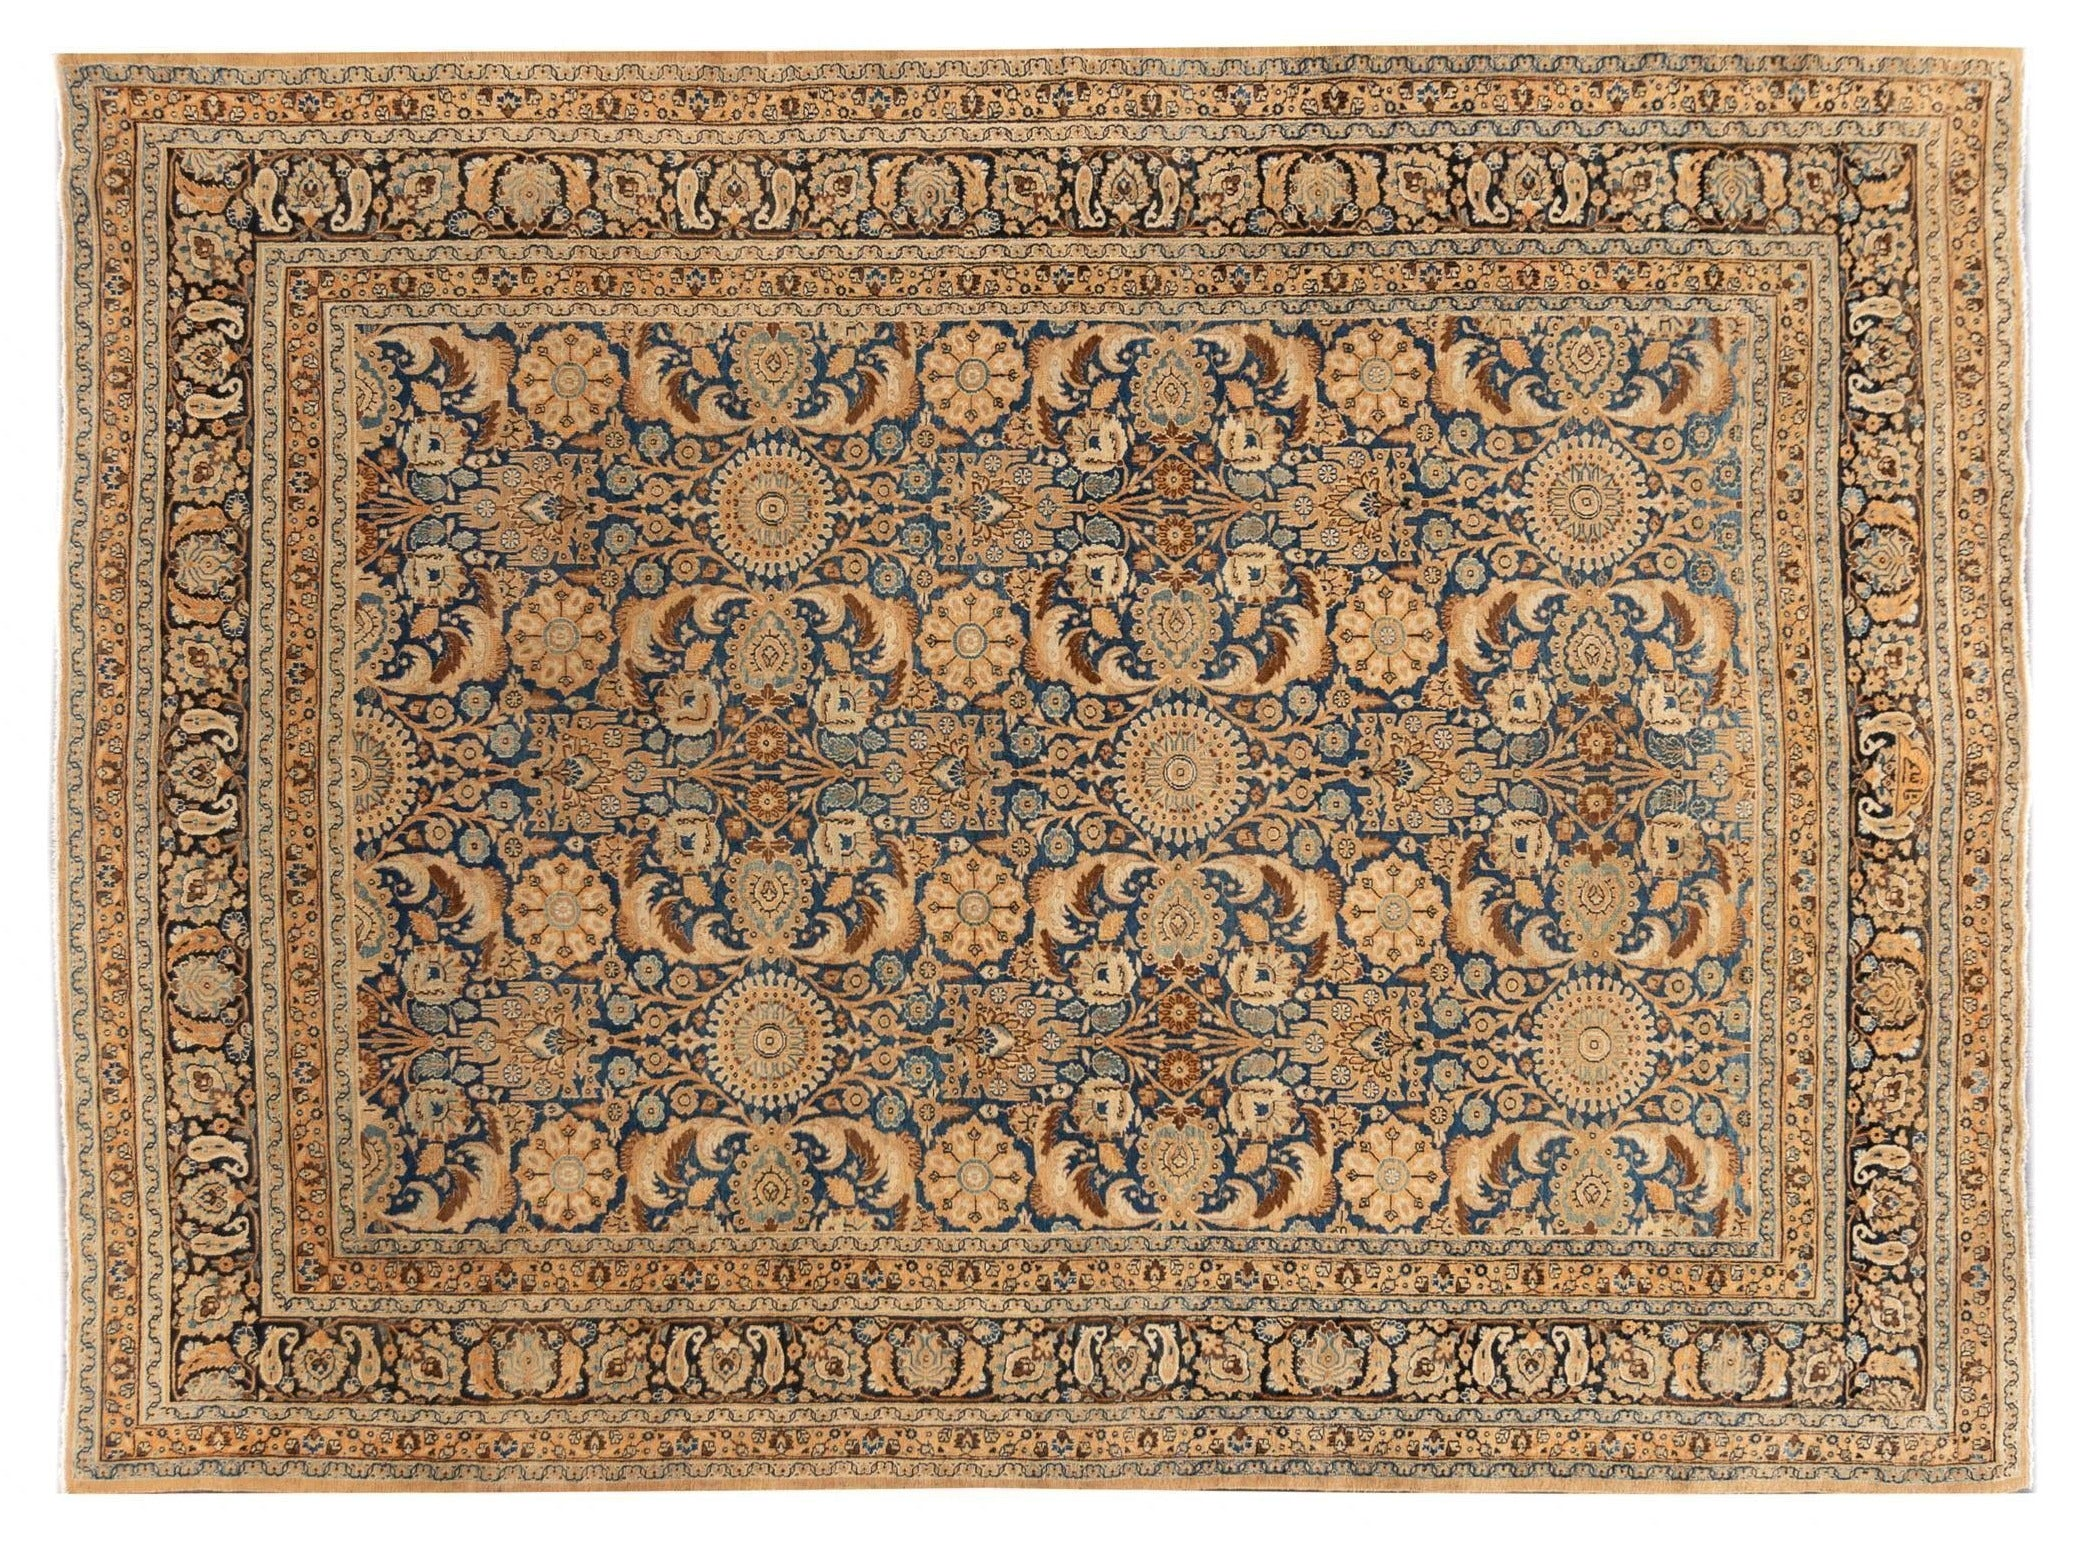 Early 20th Century Antique Tabriz Wool Rug, 10' x 13